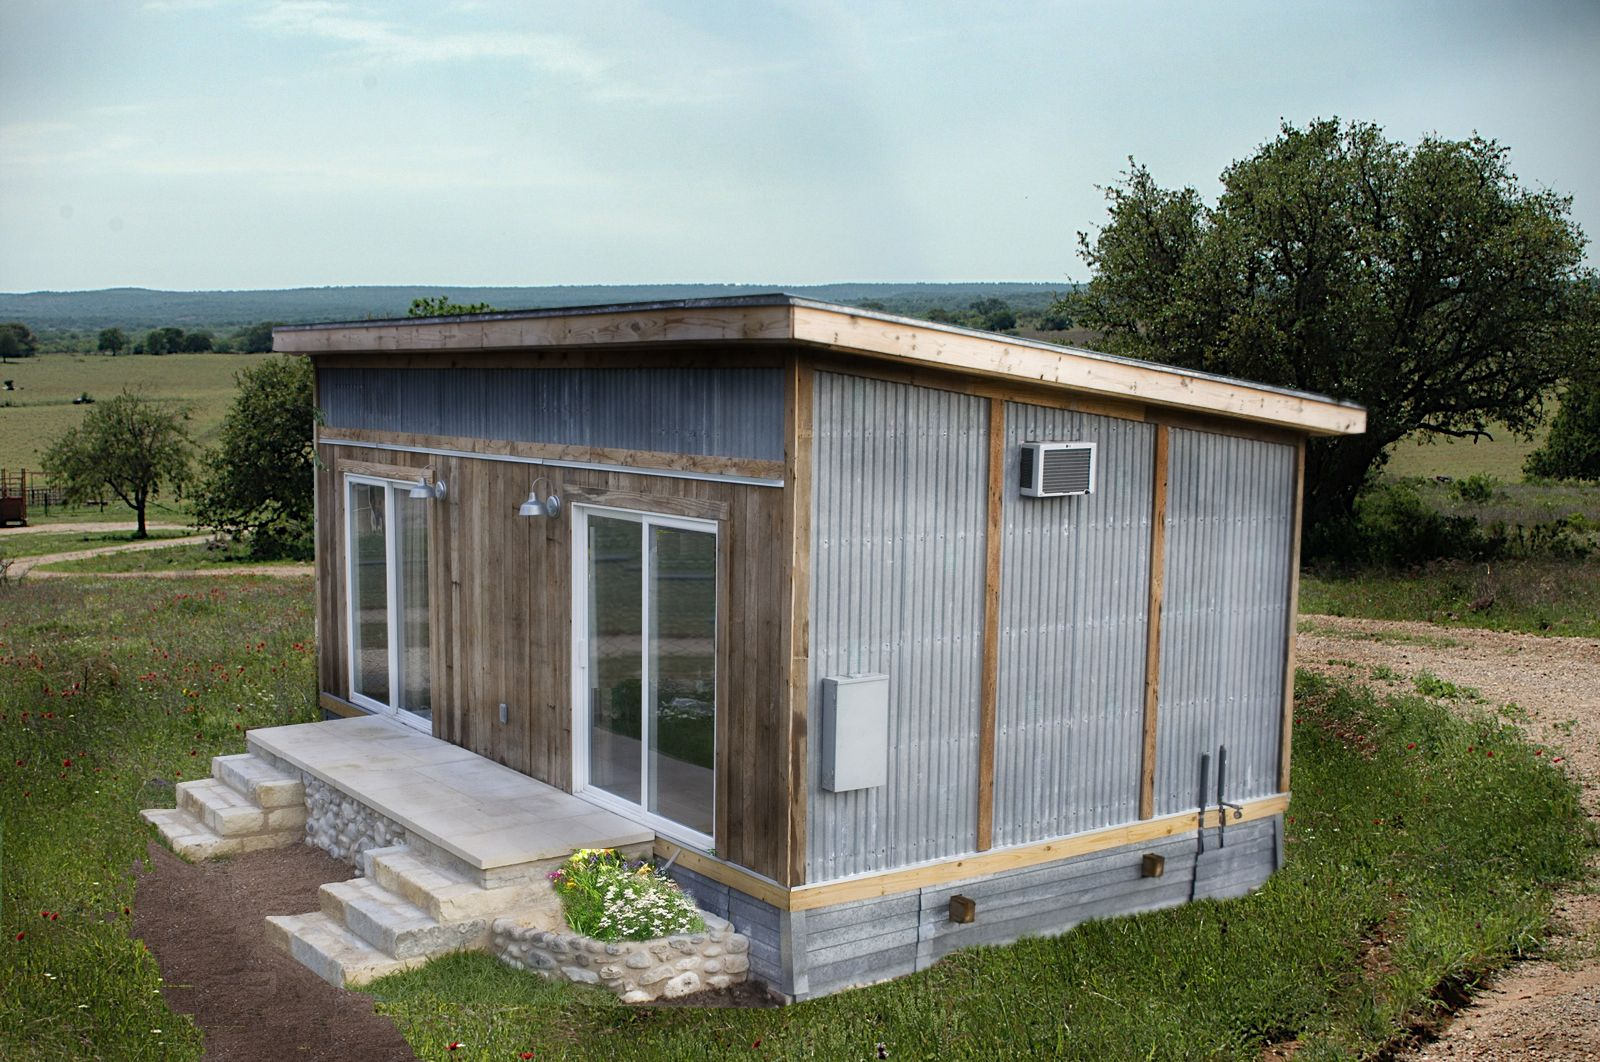 Single pitch roof house each unit is custom built using locally sourced materials taken from i love corrugated metal d